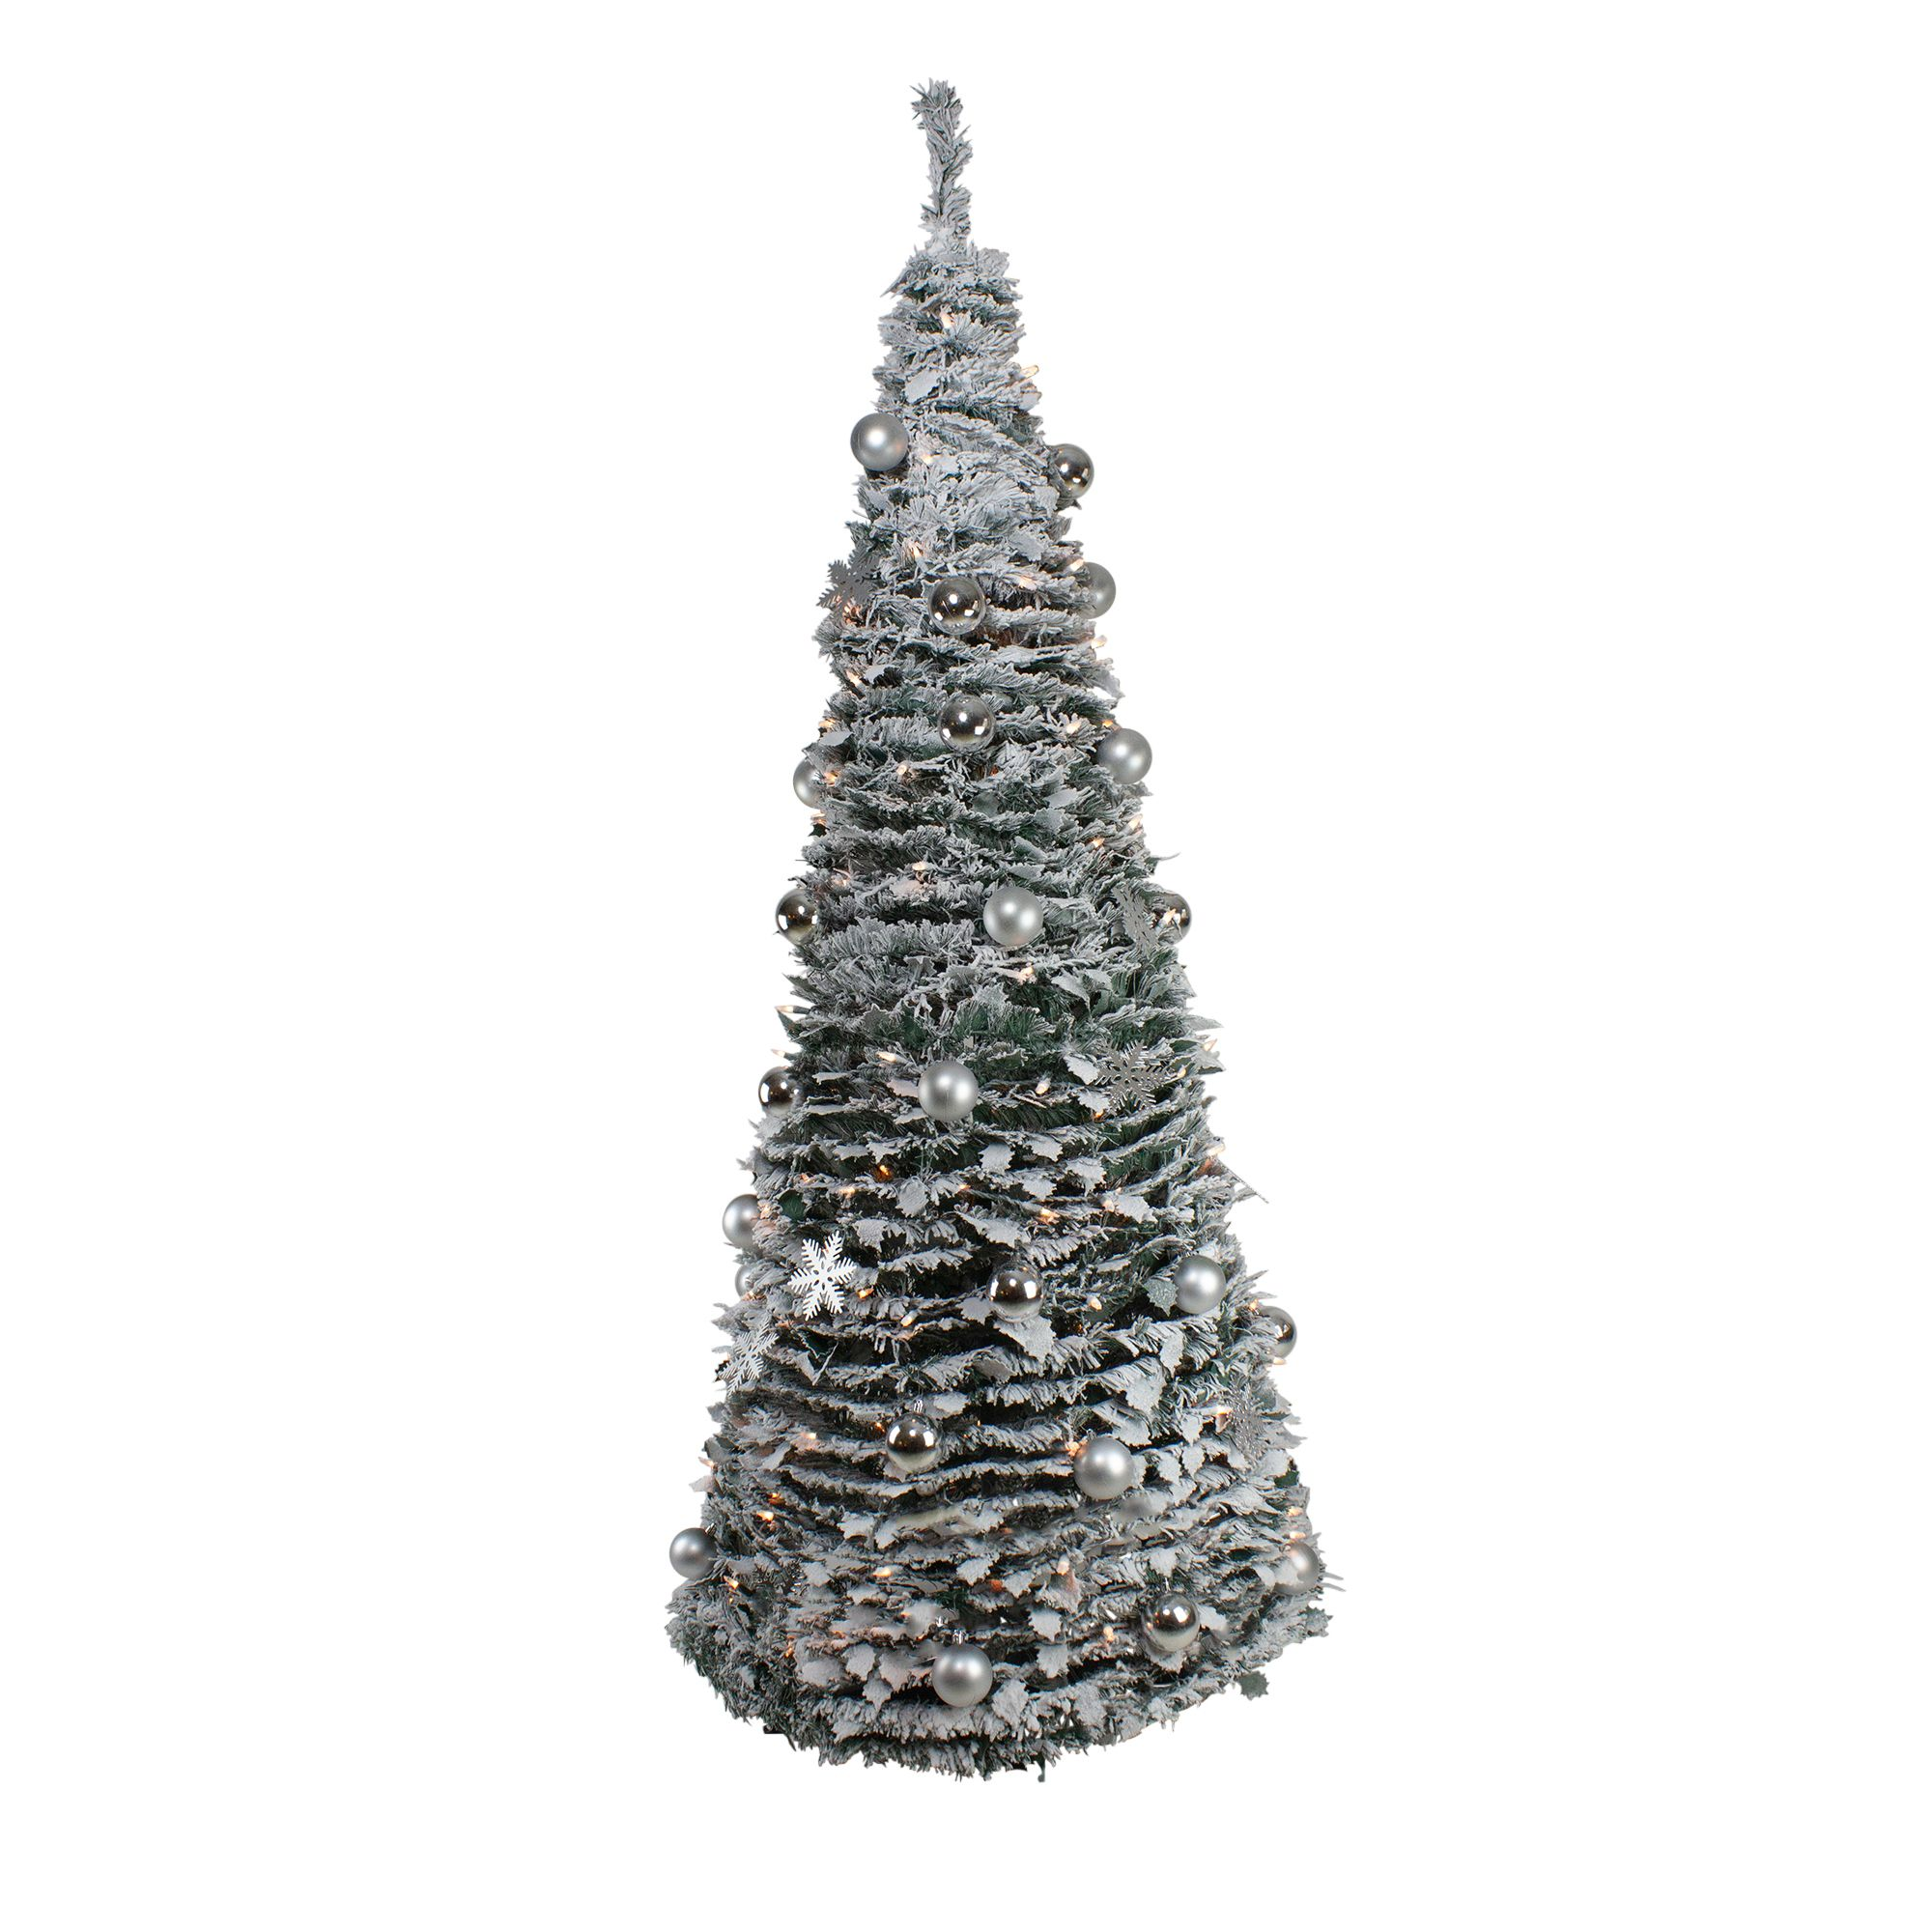 Silver Tinsel Pop Up Christmas Tree: 6' Pre-Lit Silver Tinsel Pop-Up Artificial Christmas Tree